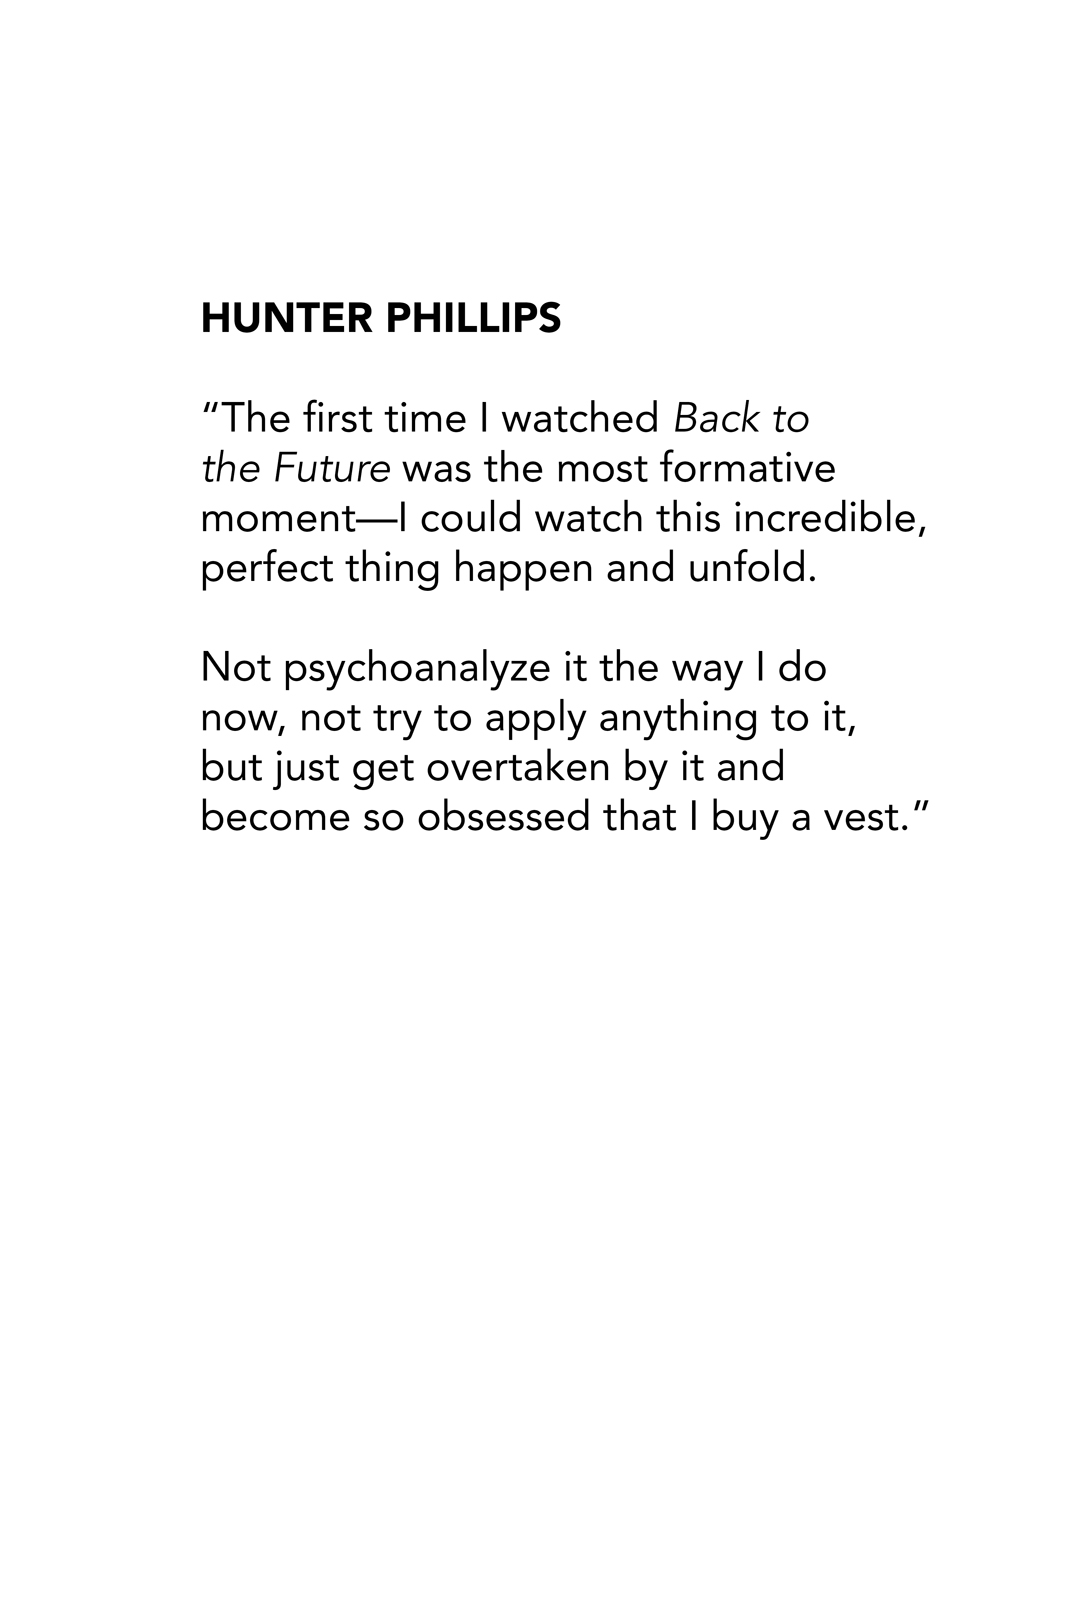 Hunter Phillips Quote.jpg